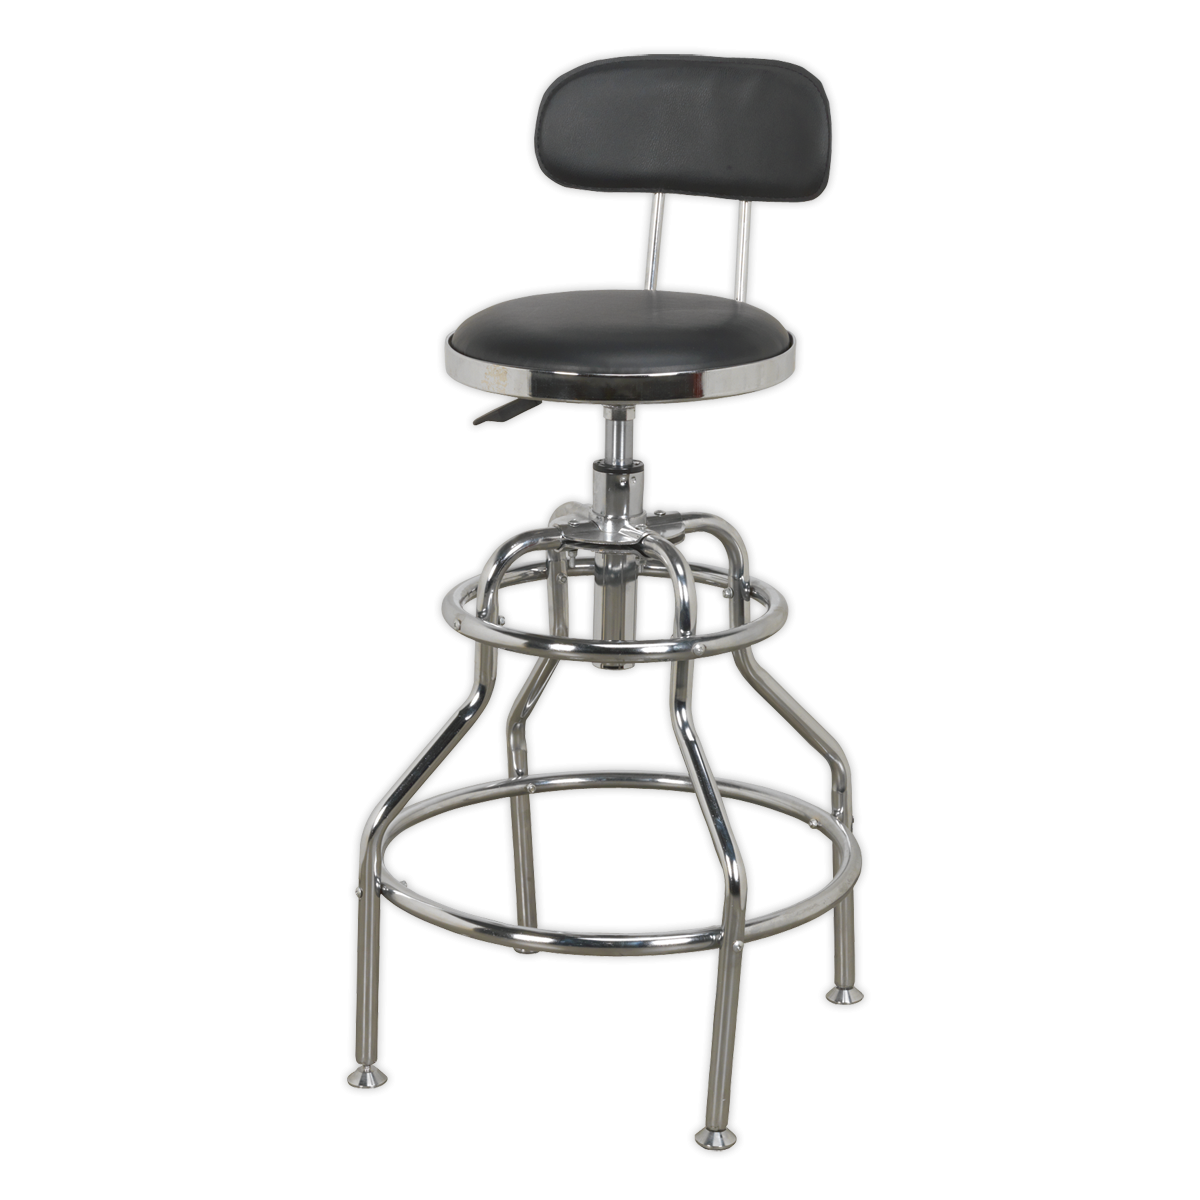 Sealey Scr14 Workshop Stool Pneumatic With Adjustable